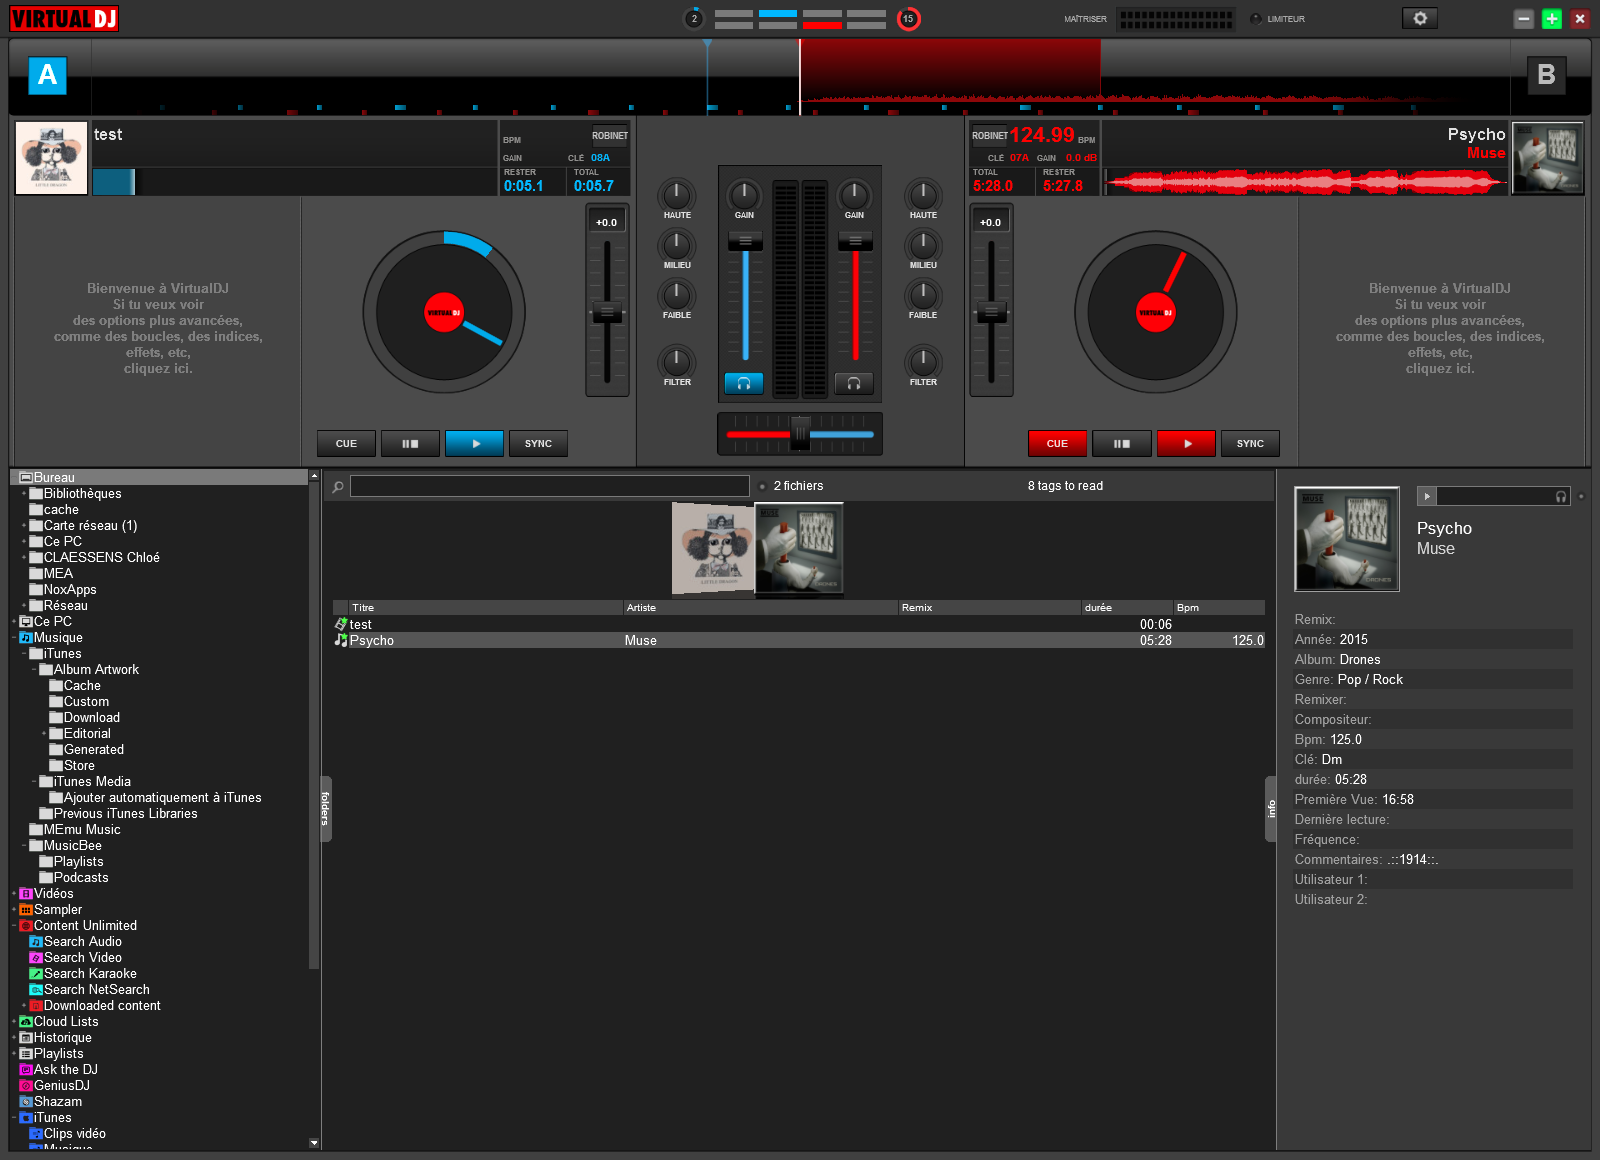 https://nicolasforcet.com/2009/04/01/tutoriel-comment-mixer-avec-virtual-dj/